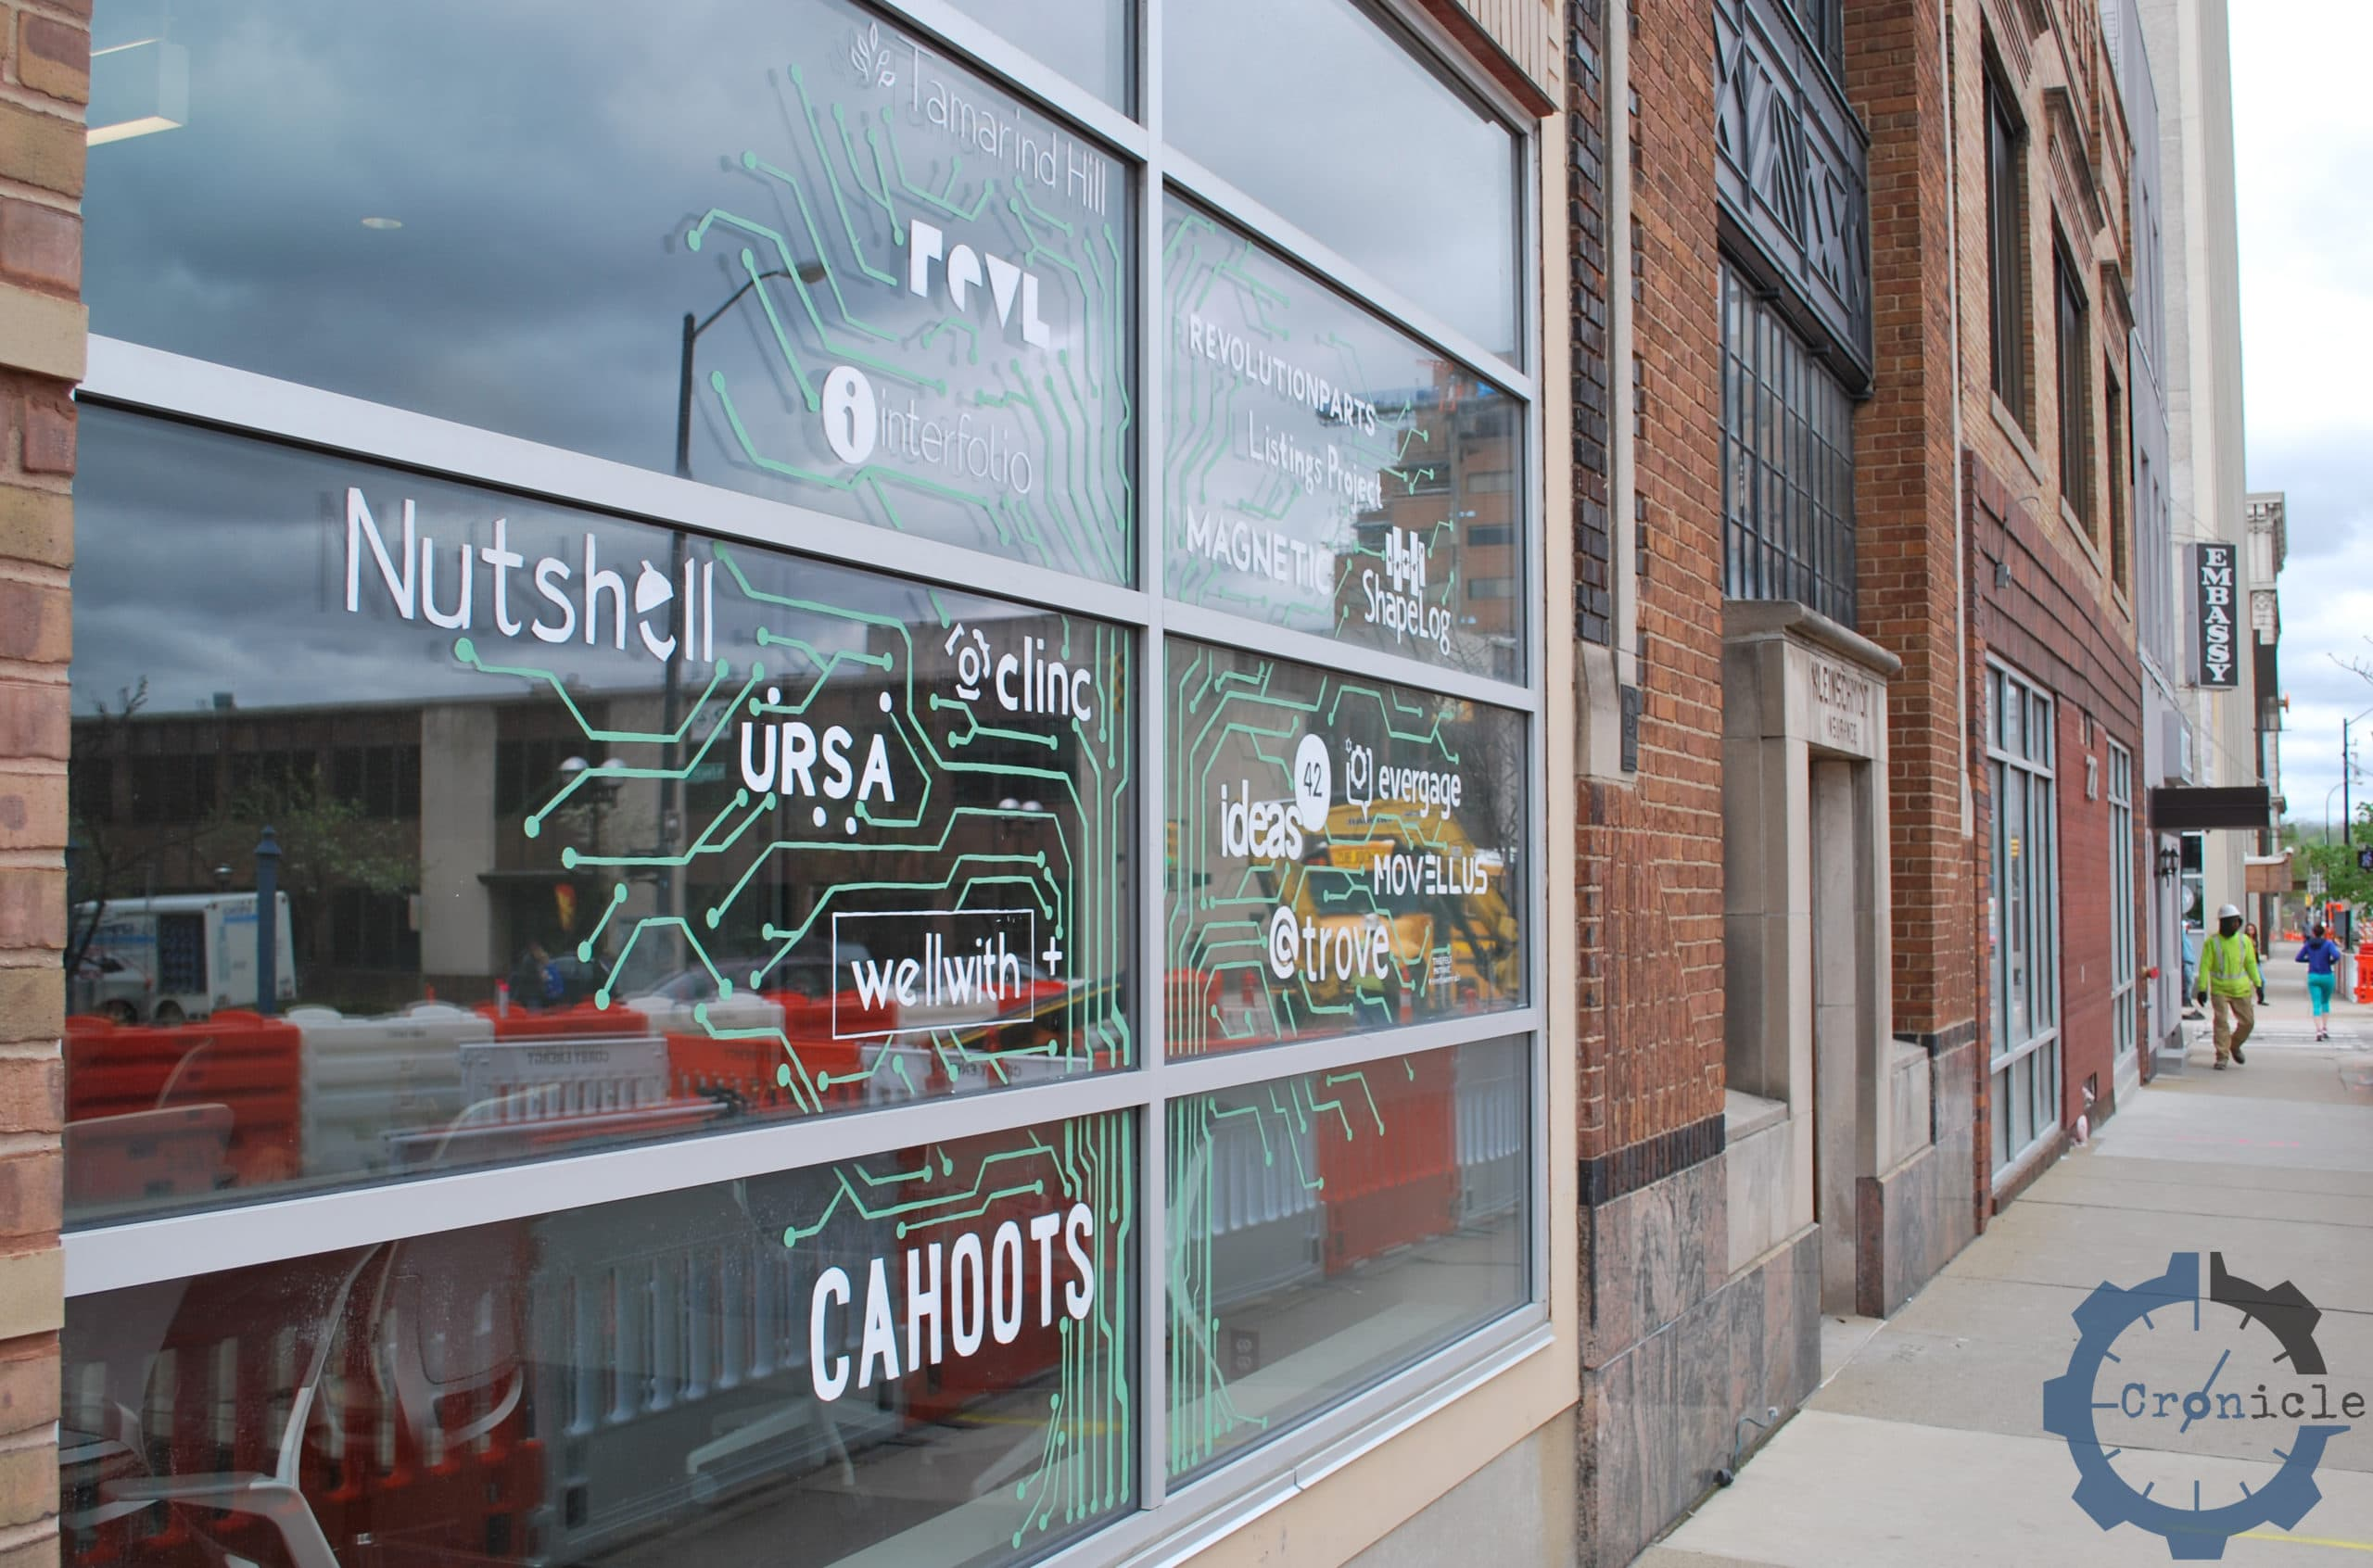 Cahoots, Ann Arbor coworking, coworking space, tech coworking, Ann Arbor tech, Clinc, Trove, Nutshell